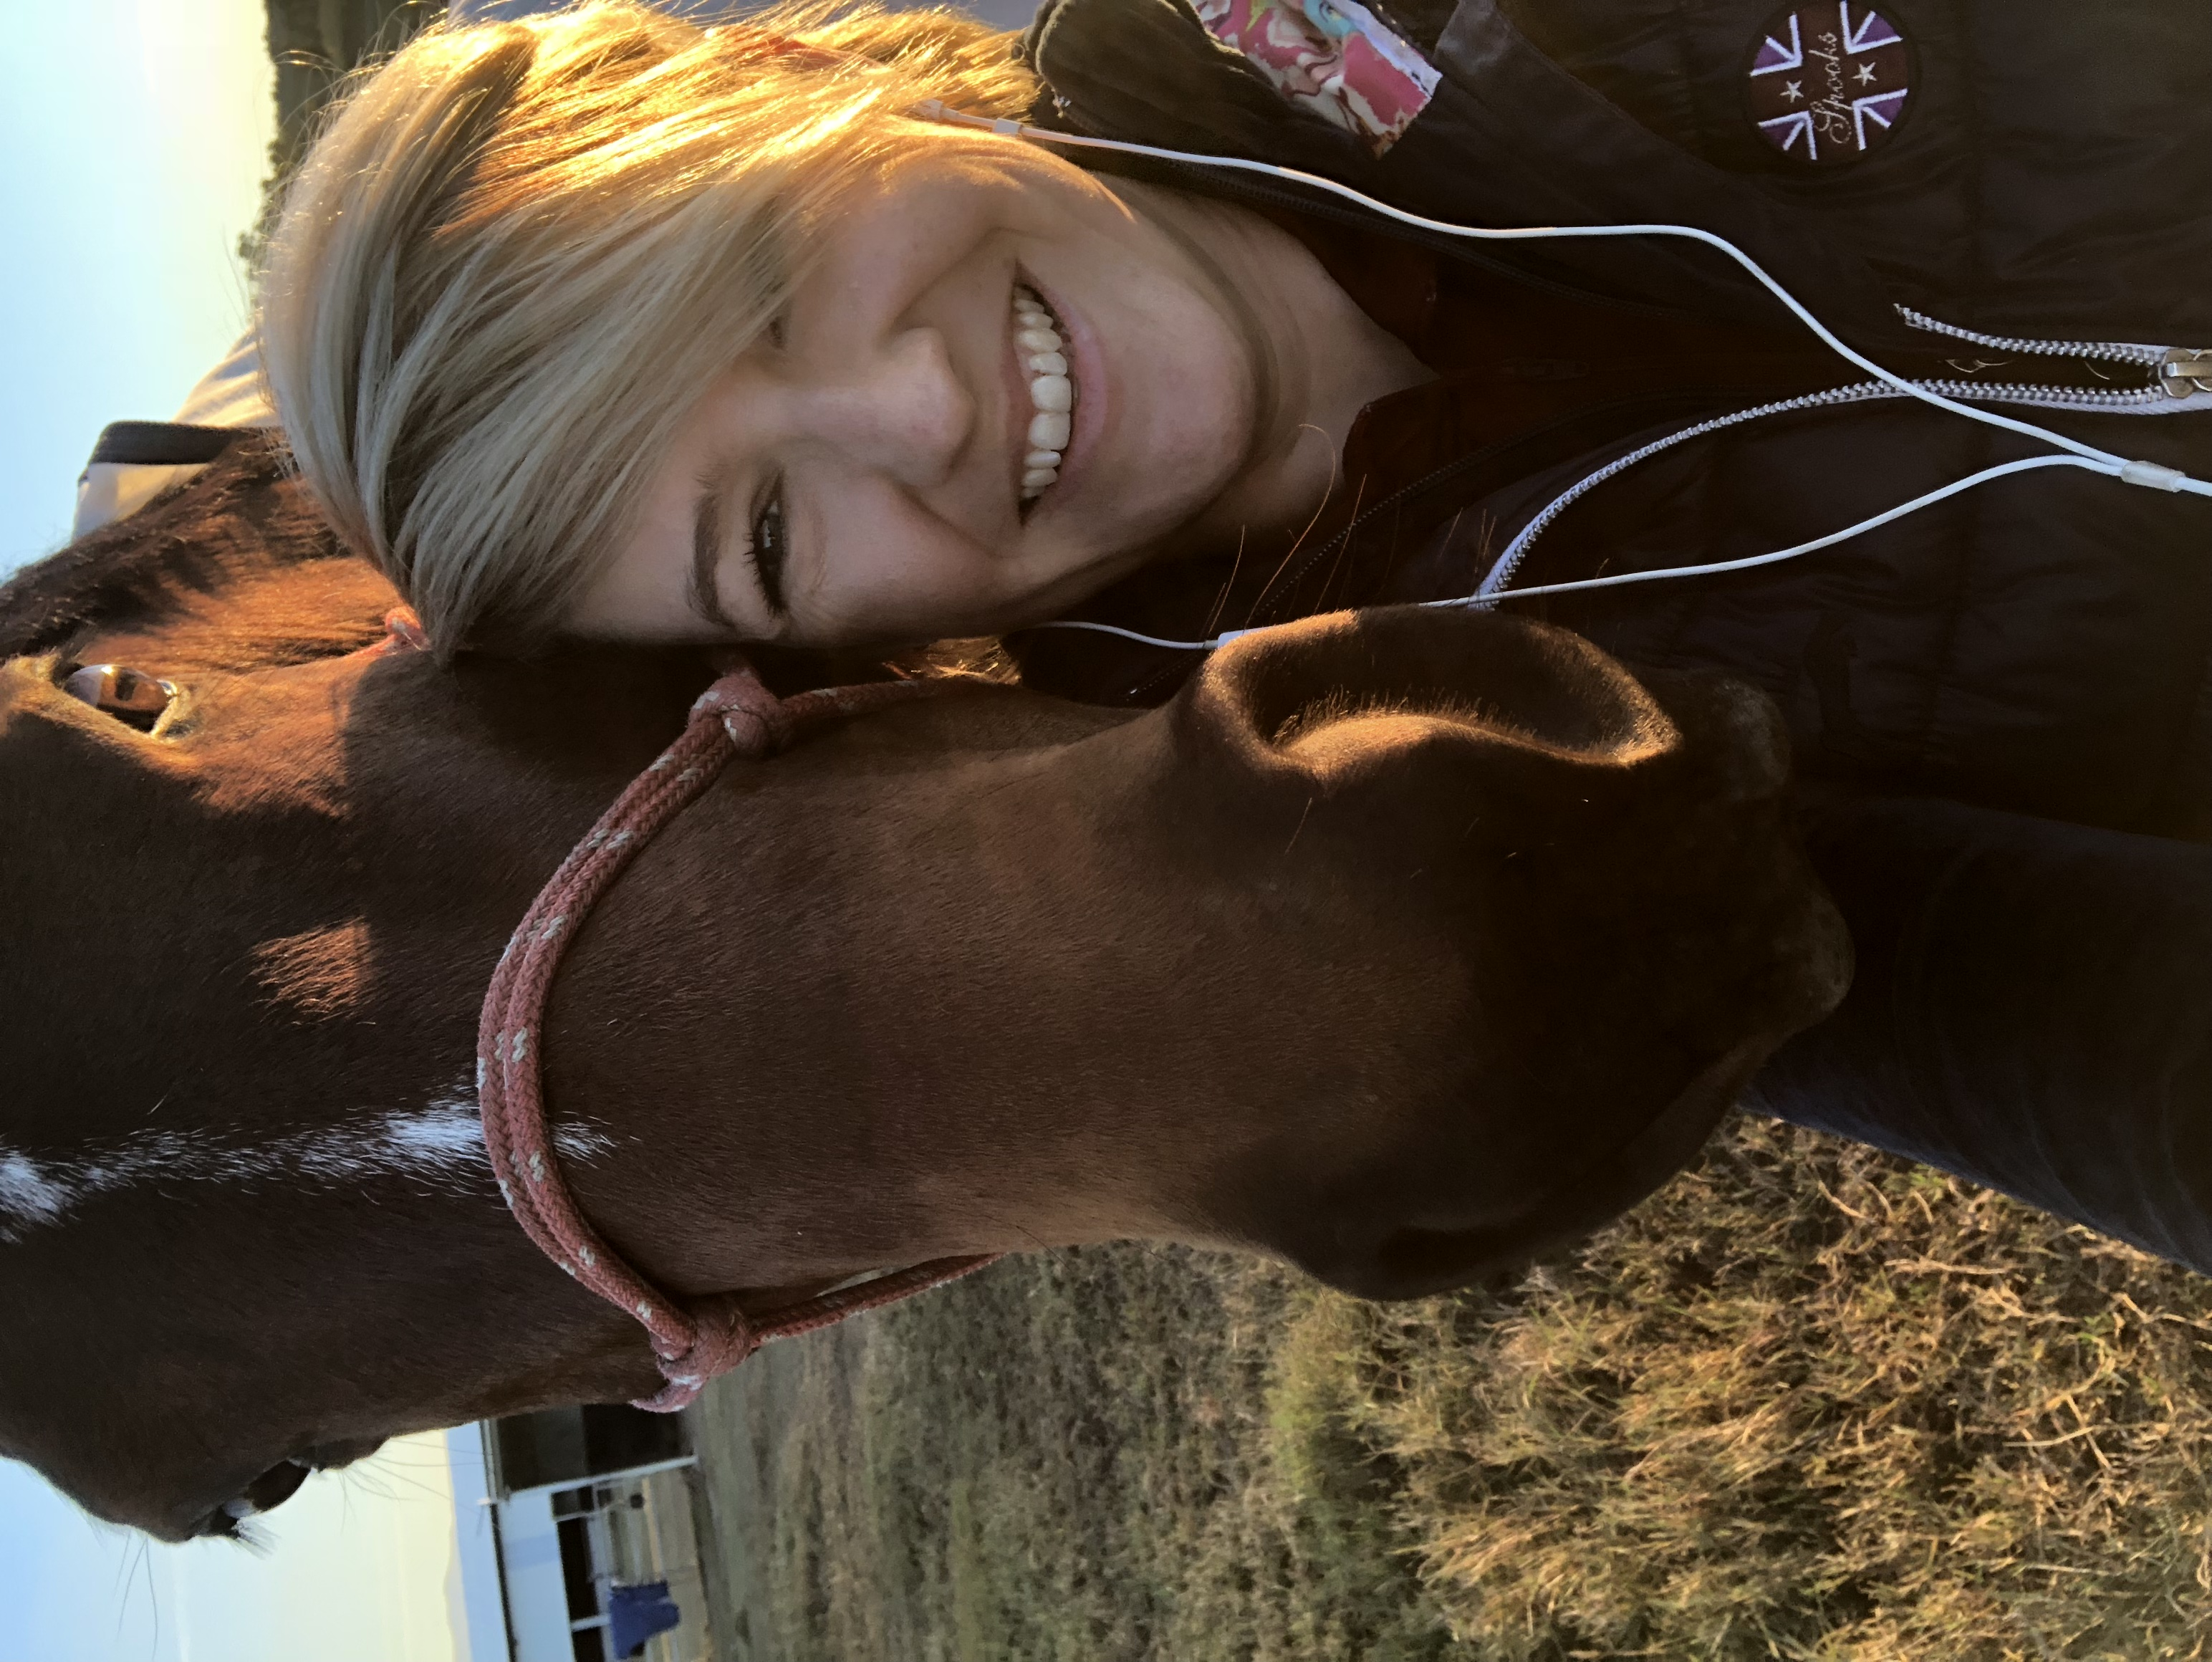 Day 29 of The Horse Riders Challenge - Equestrian Selfie